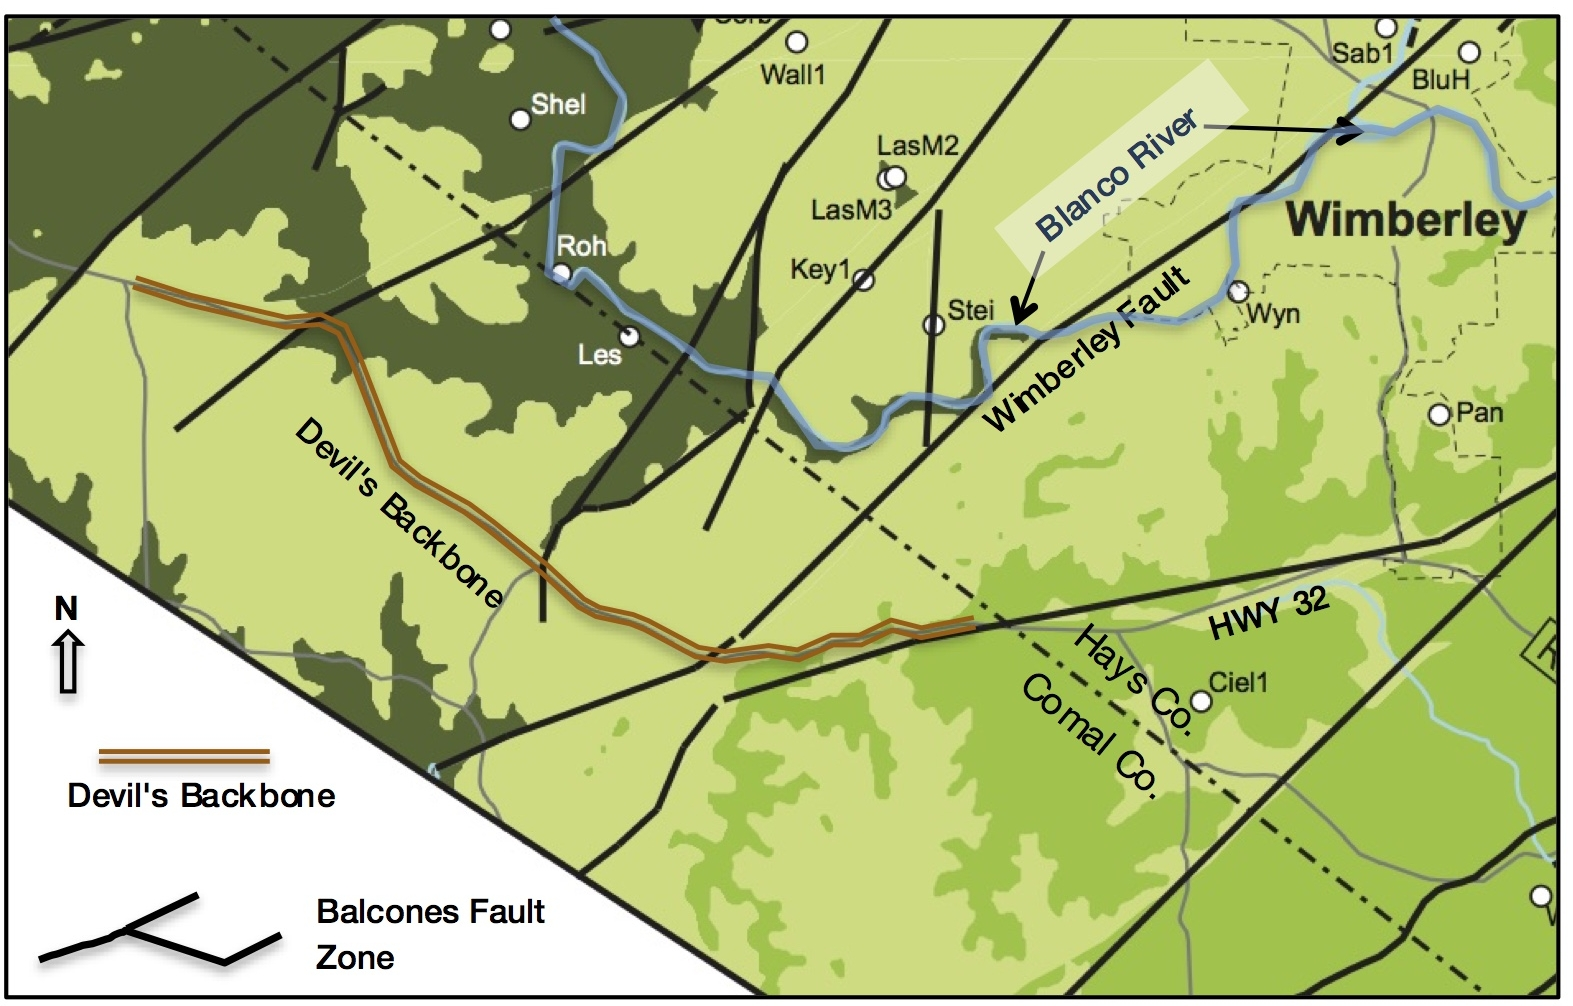 Geologic Base Map - reference: Hydrogeologic Atlas of the Hill Country Trinity Aquifer, Wierman, Broun & Hunt, July 2010